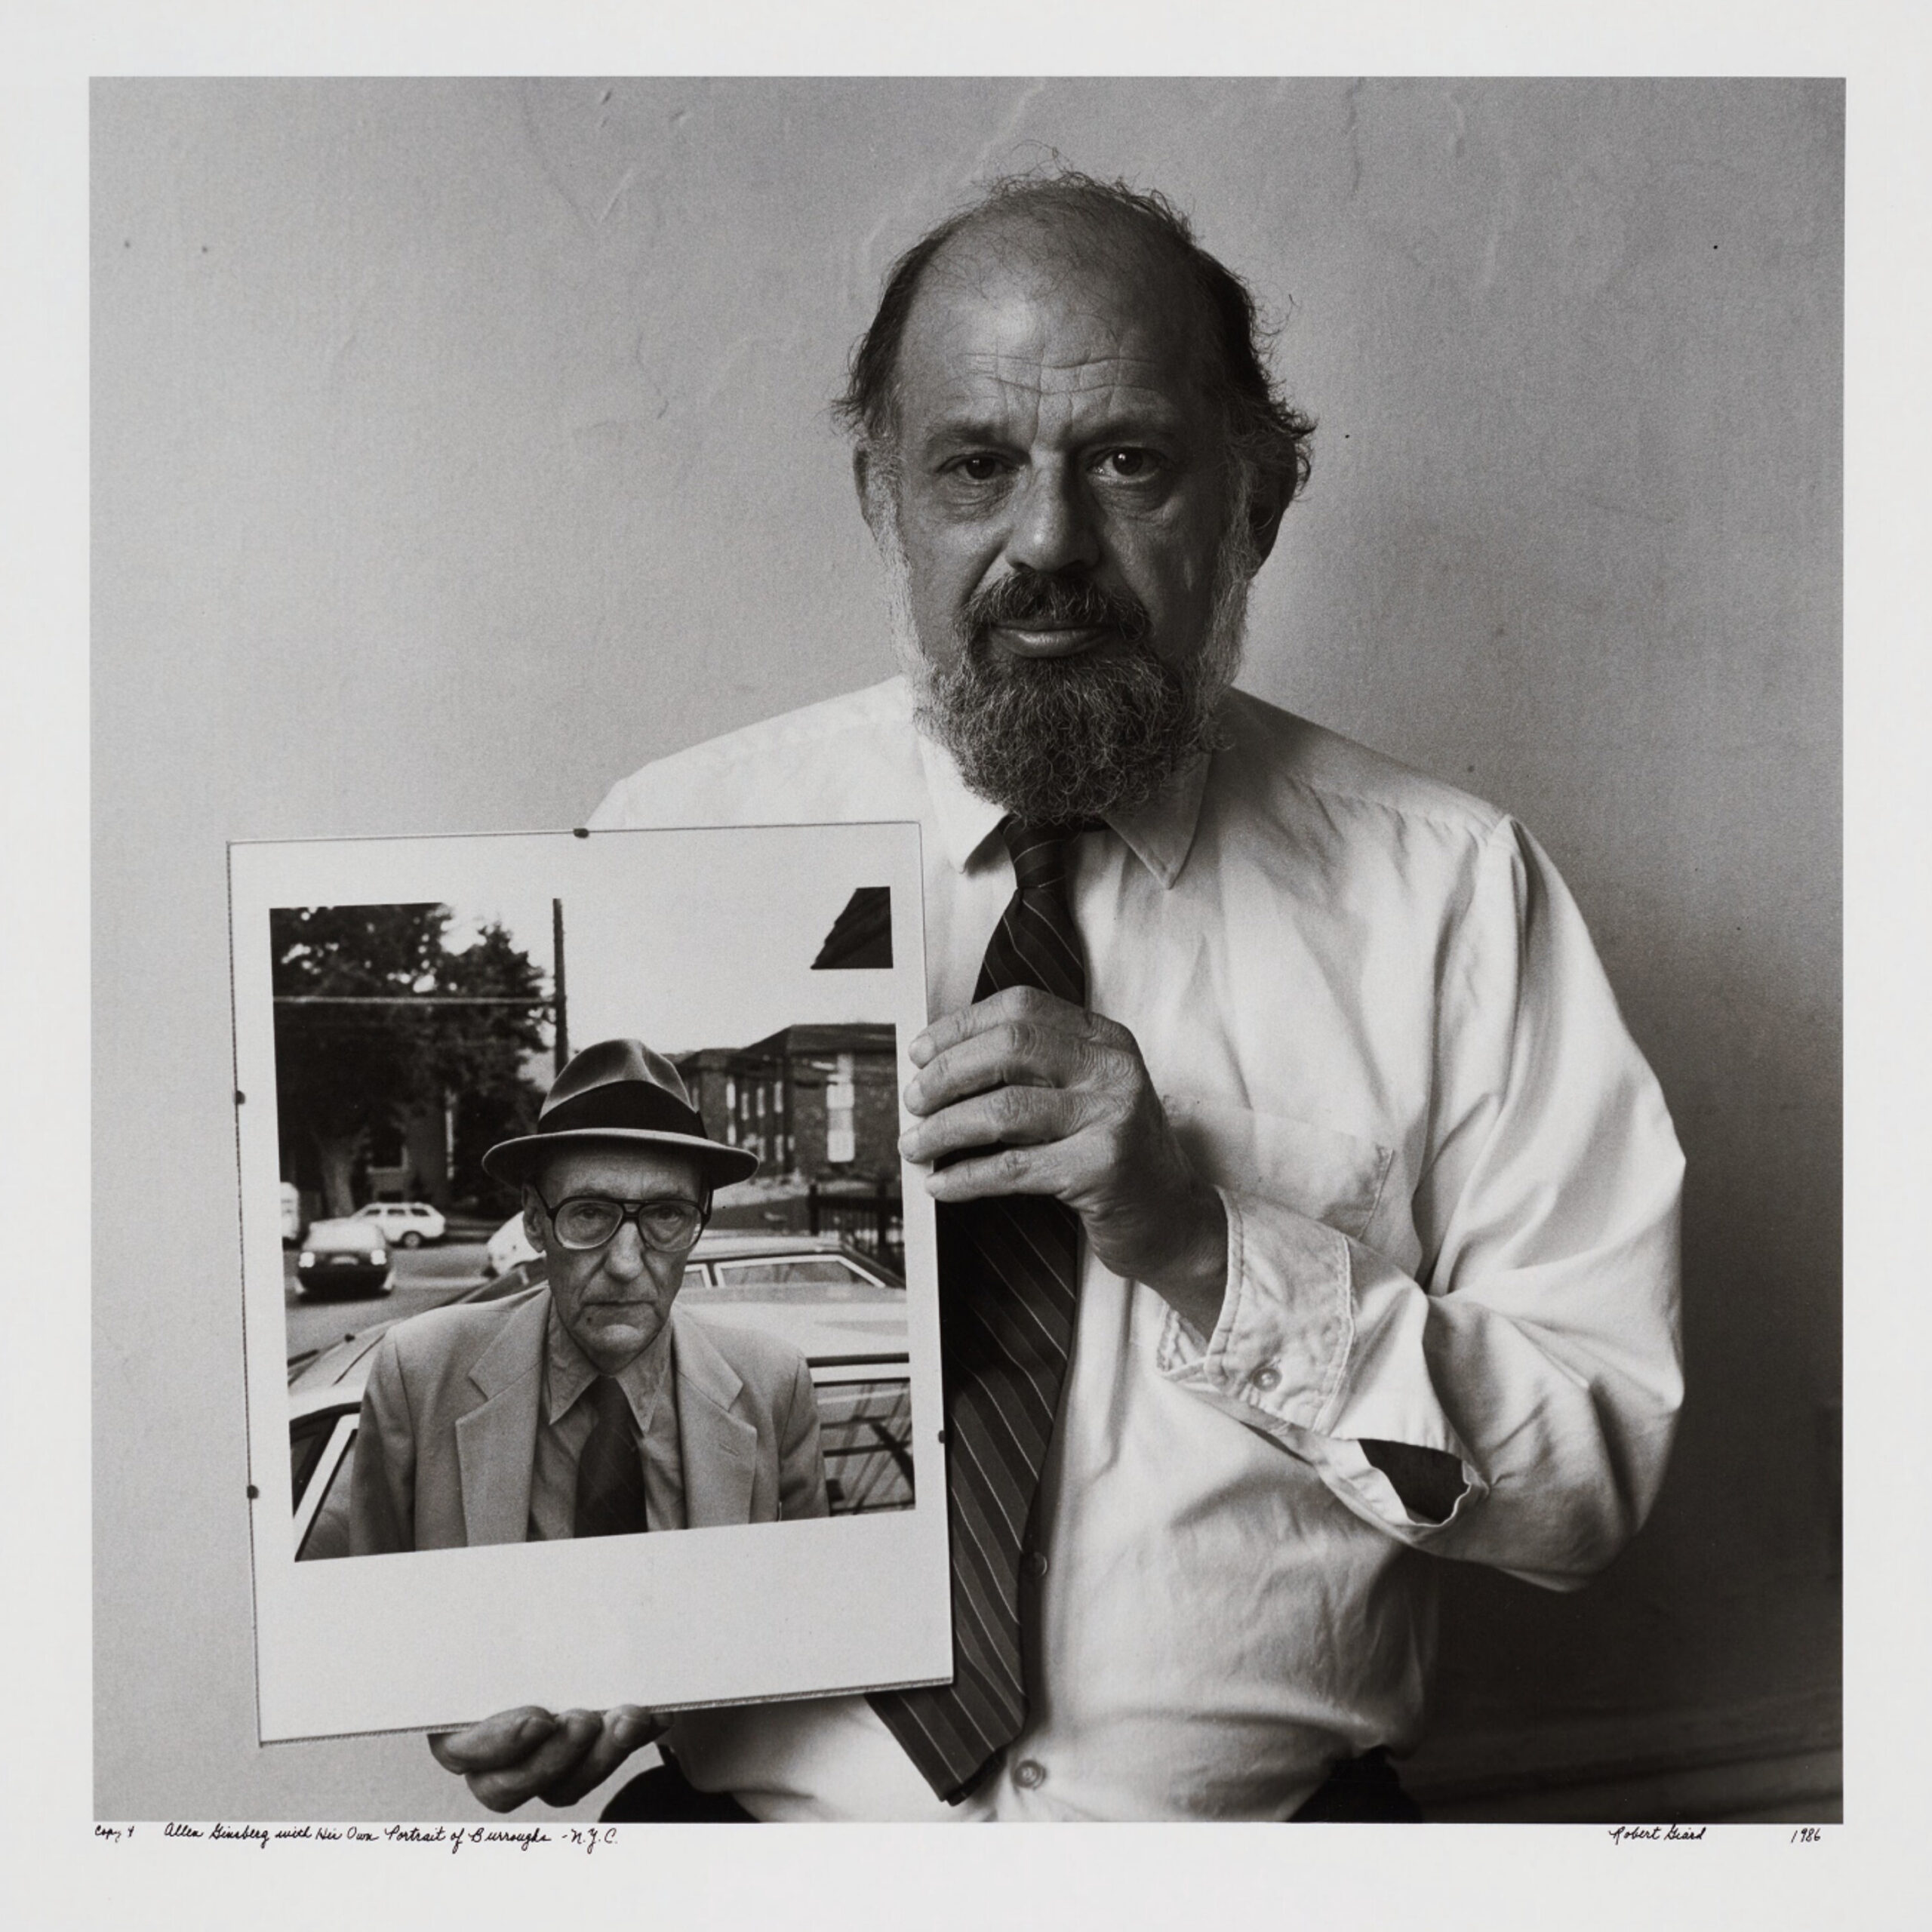 Ginsberg, Allen, with His Own Portrait of Burroughs, 1986